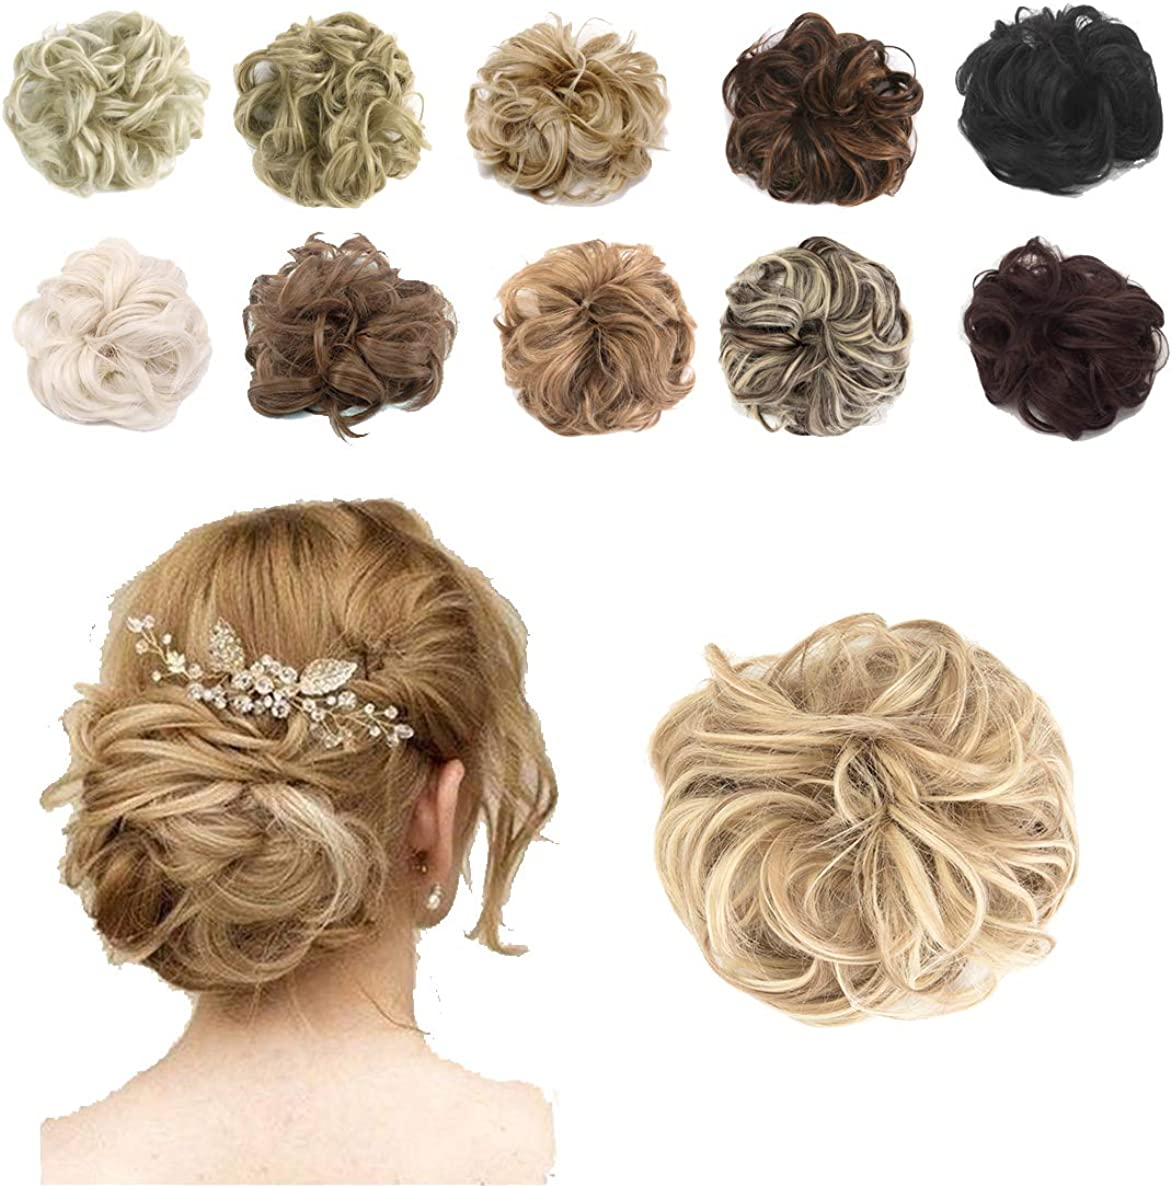 Hioffer Shipping included New product!! Hair Bun Extensions Messy Chignon Hairpiece Synthetic Sc